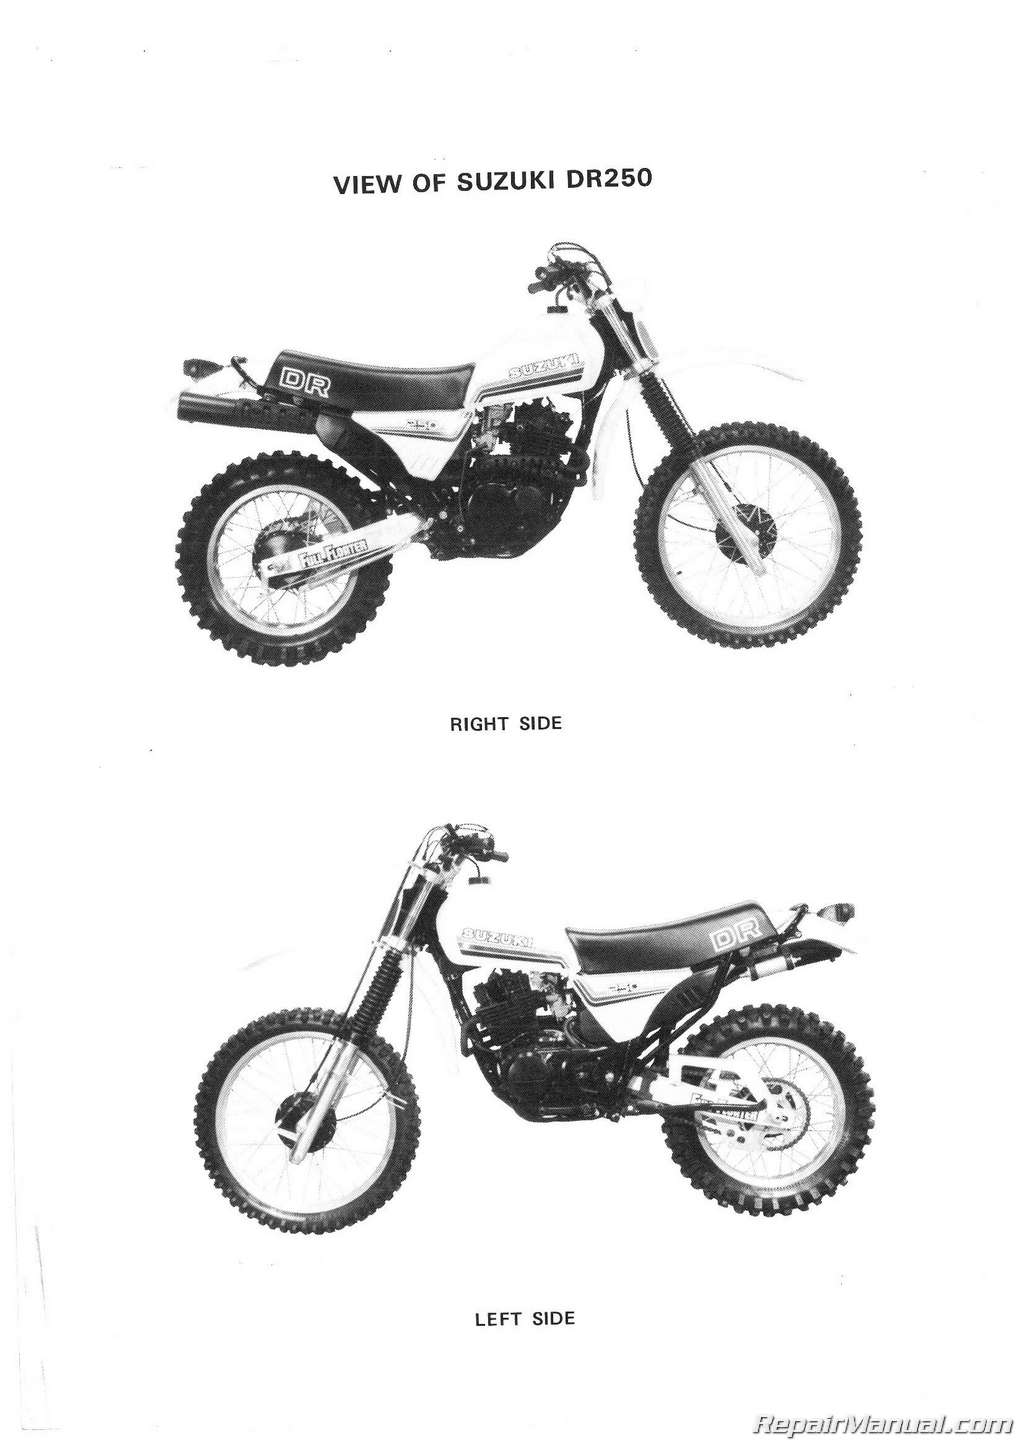 Suzuki Dr250 Sp250 Motorcycle Service Manual